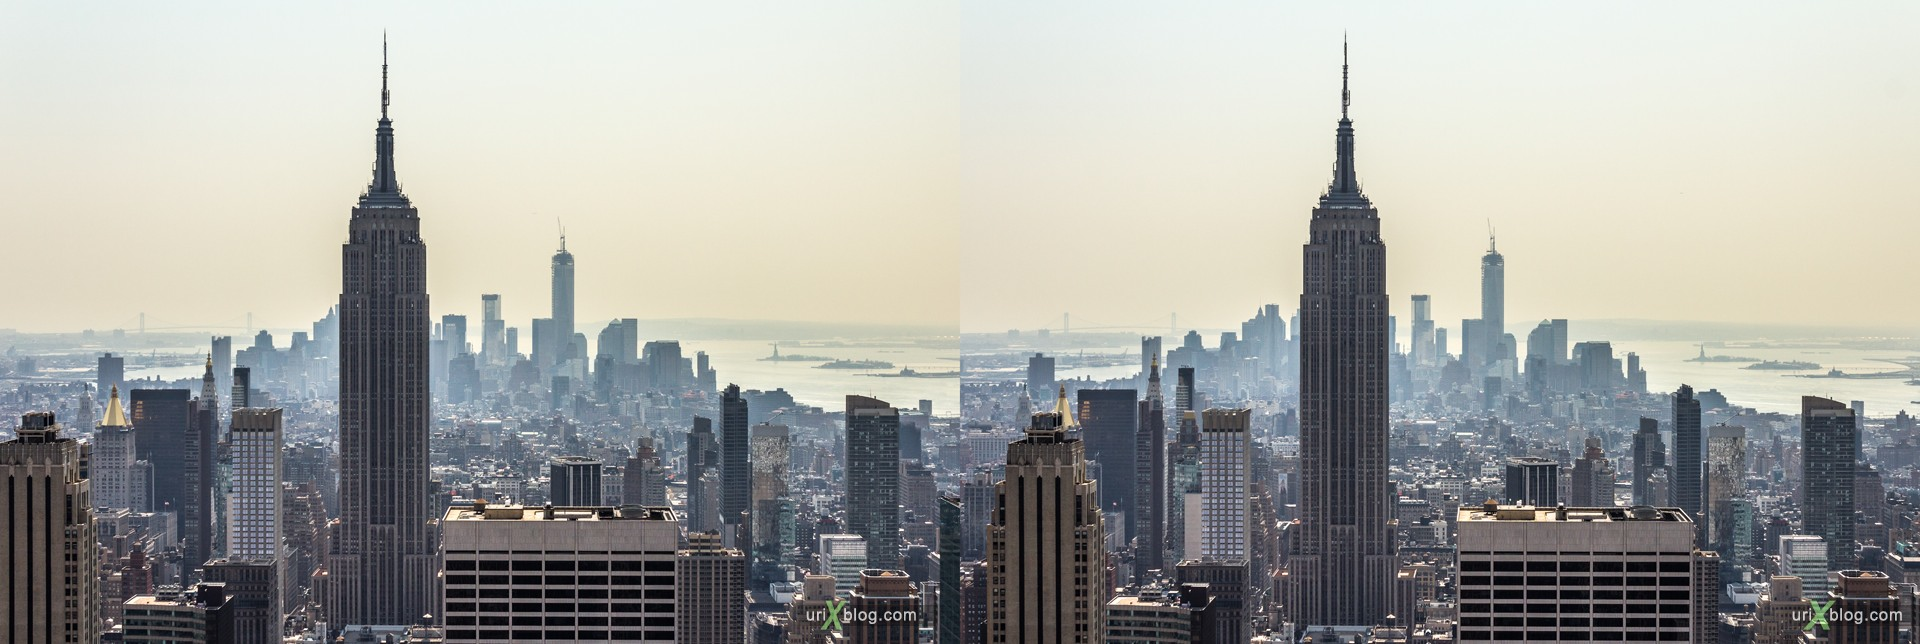 2013, NYC, New York, Lower Manhattan, Empire State Building, Top of the Rock Observation Deck, Rockefeller Canter, view from the top, city, building, skyscraper, panorama, 3D, stereo pair, cross-eyed, crossview, cross view stereo pair, stereoscopic